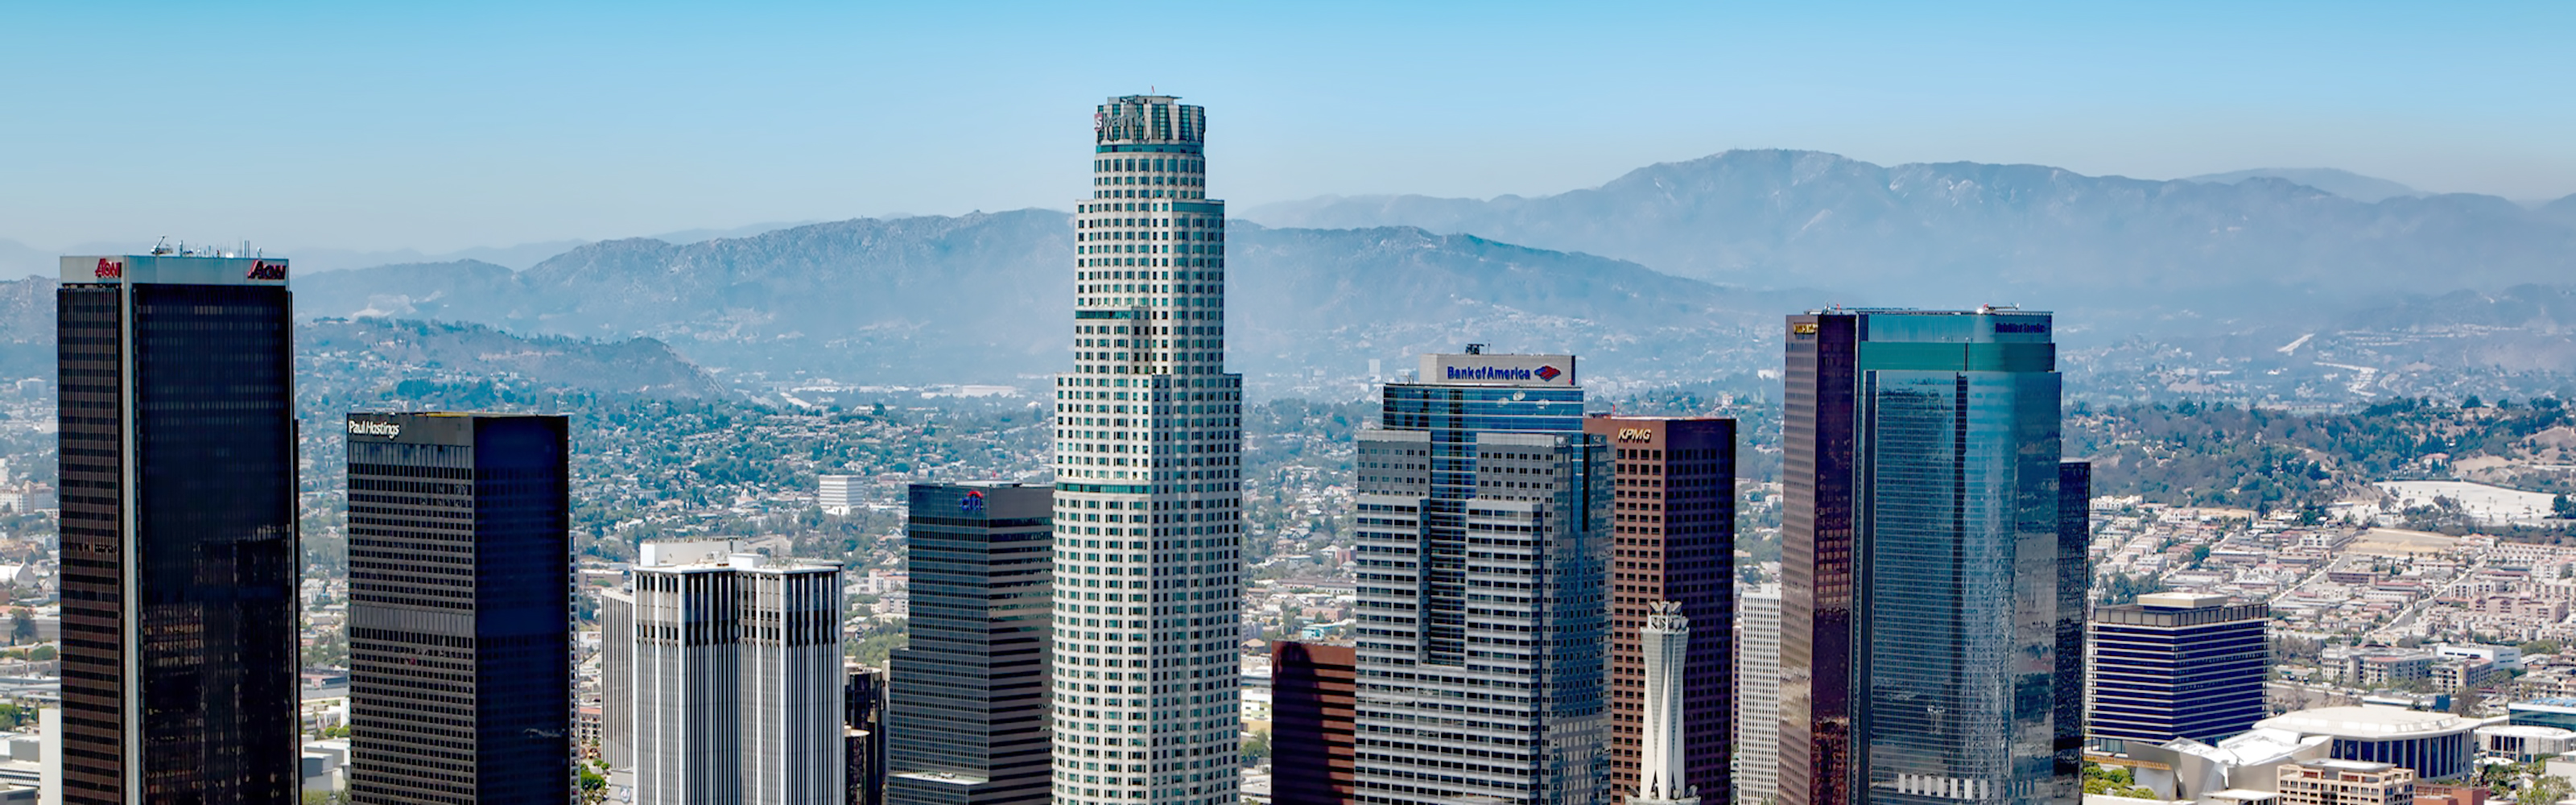 Downtown Los Angeles Skyline - slider image